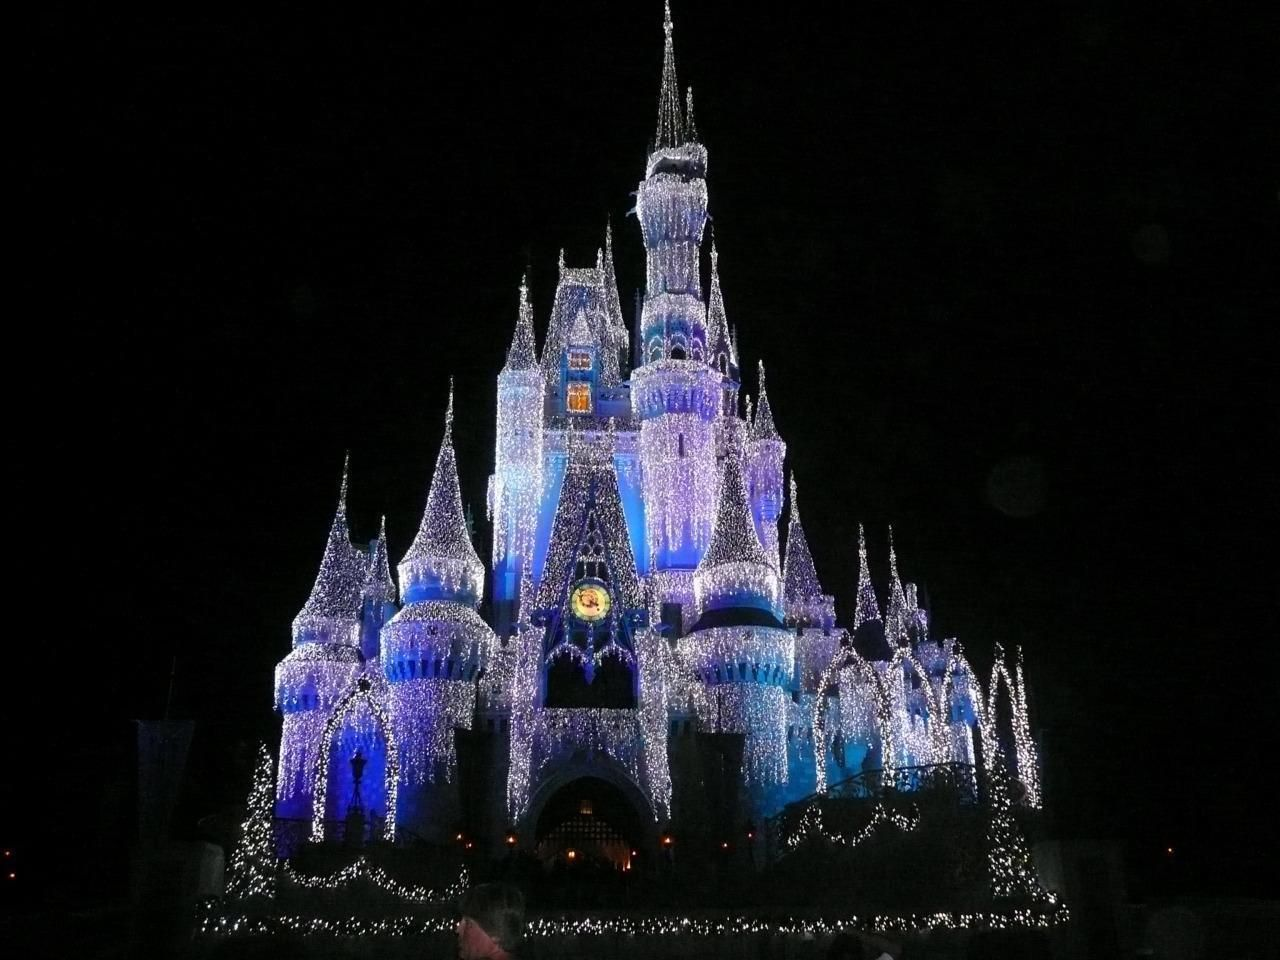 on christmas day this year disneyland in california and the magic kingdom at disney world in florida hit maximum capacity and closed forcing the parks to